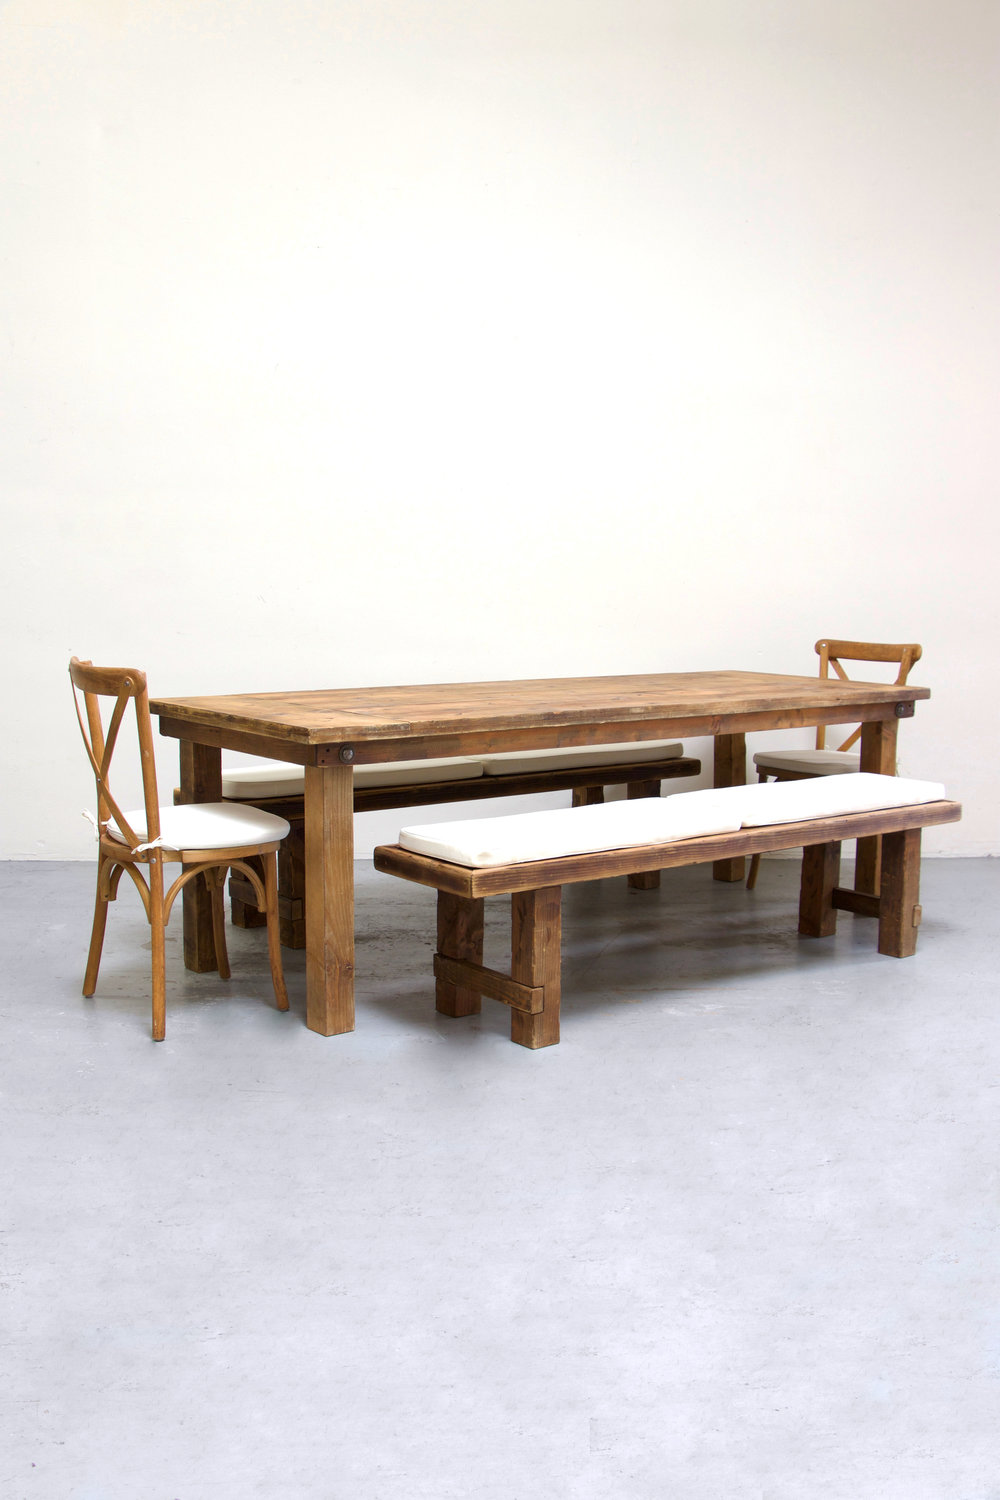 1 Honey Brown Farm Table w/ 2 Long Benches & 2 Cross-Back Chairs $160